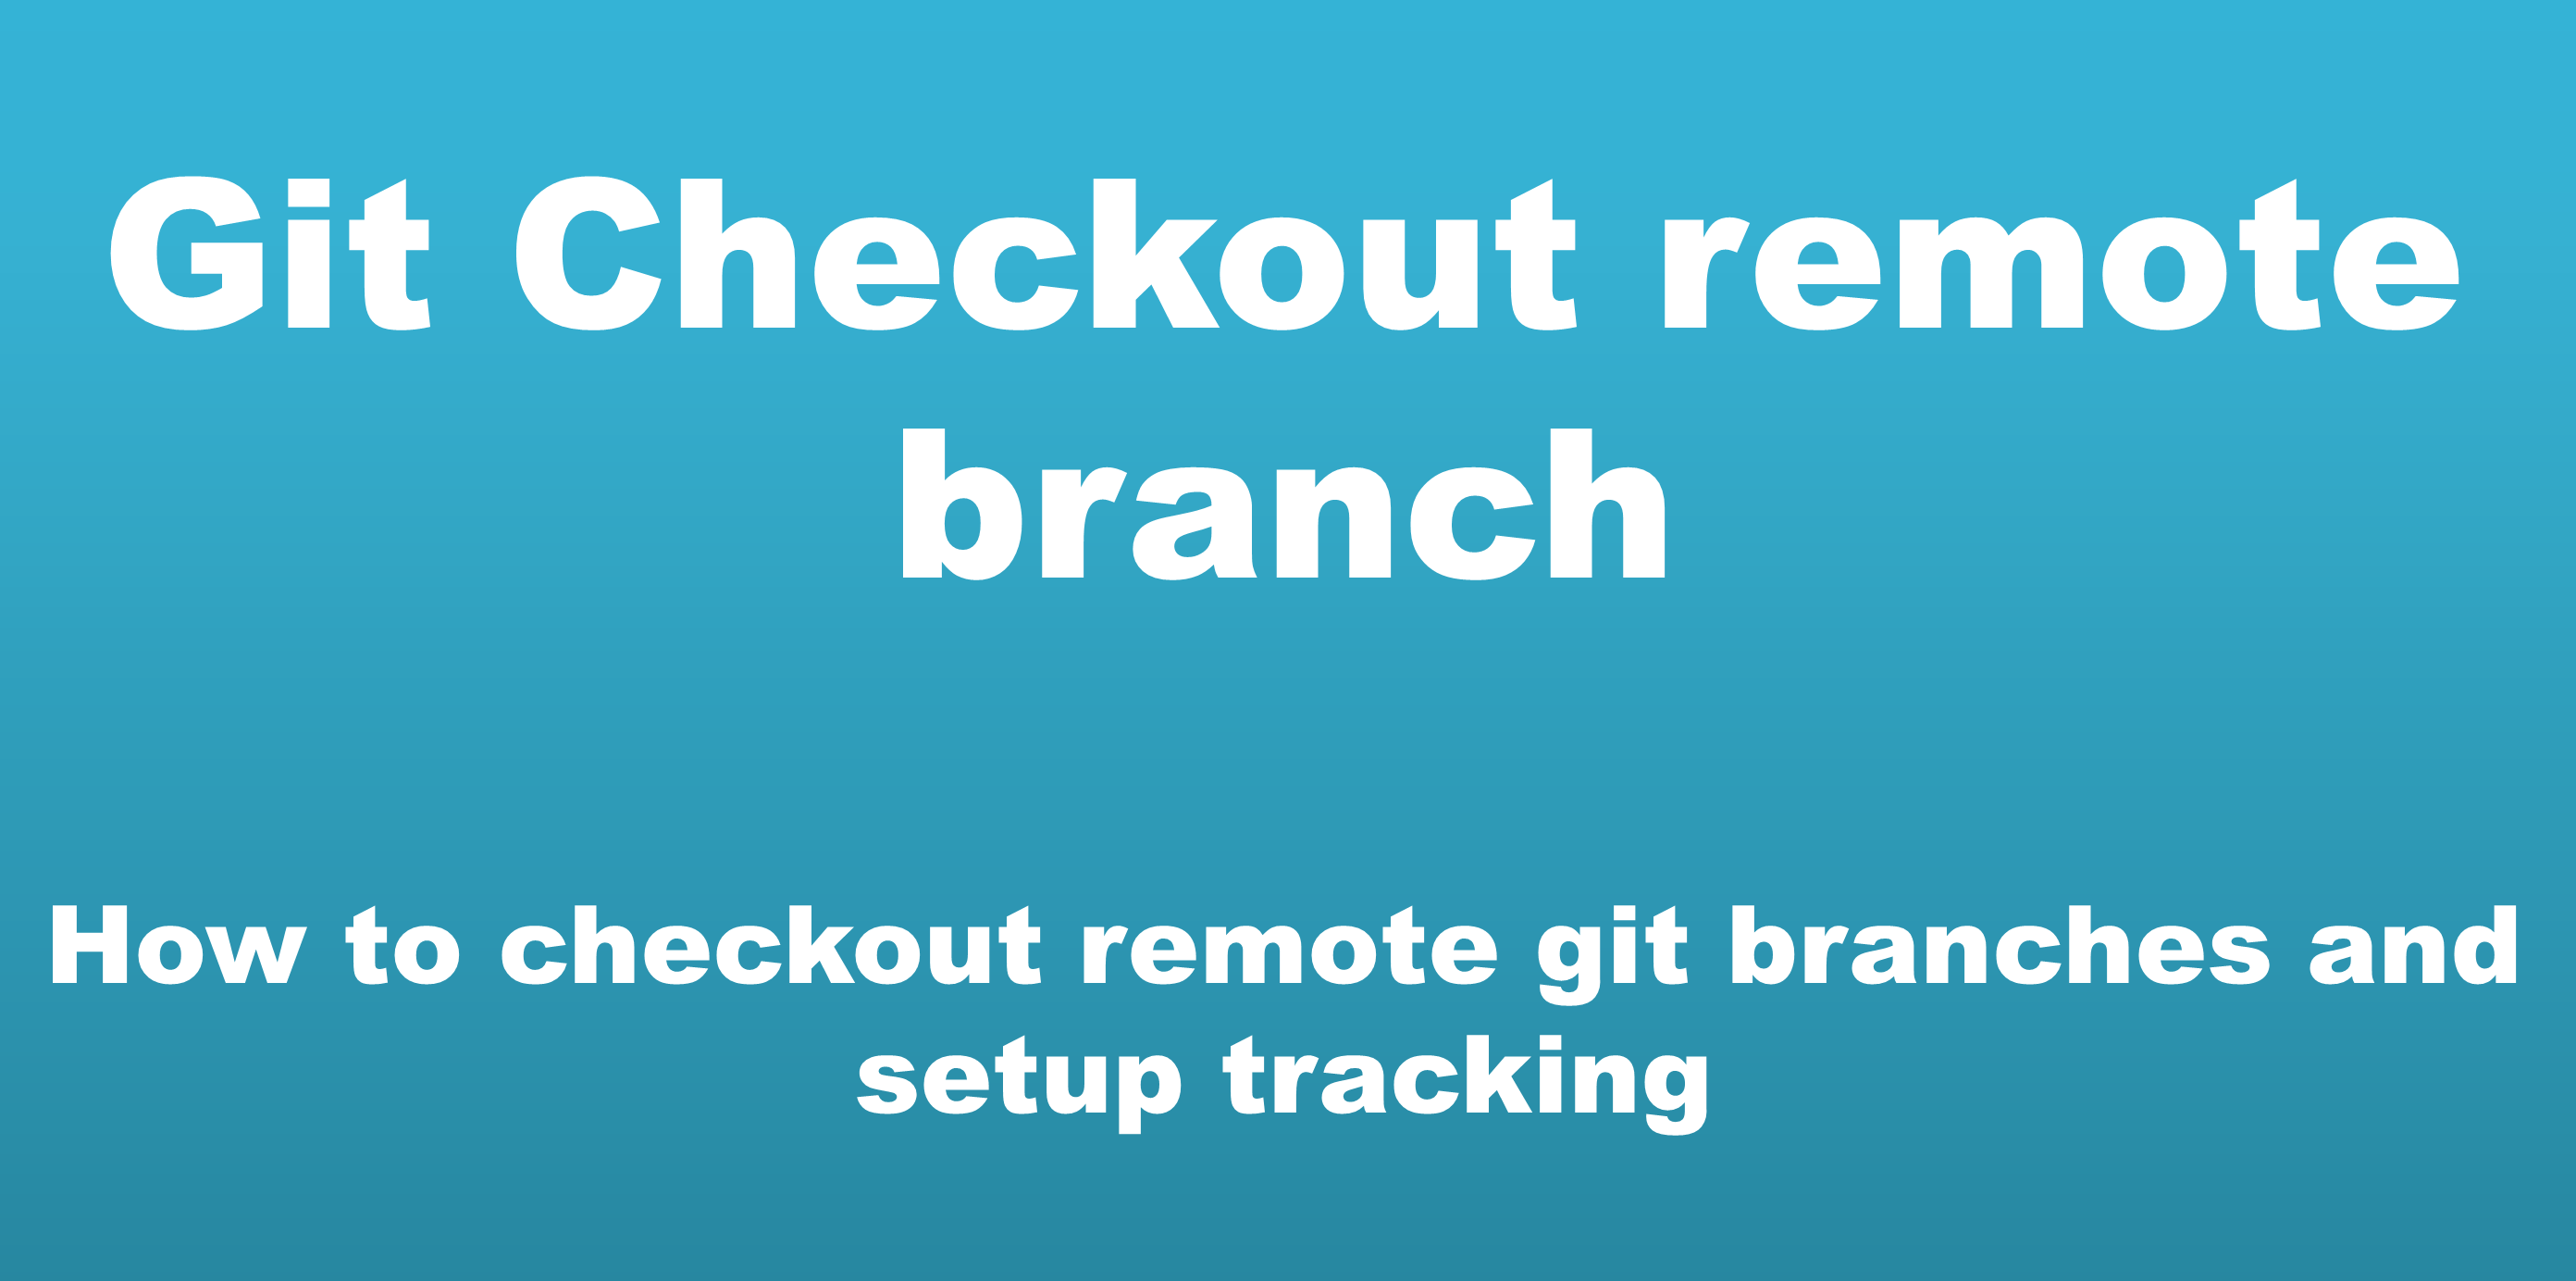 git checkout remote branch – How to, Examples and Options